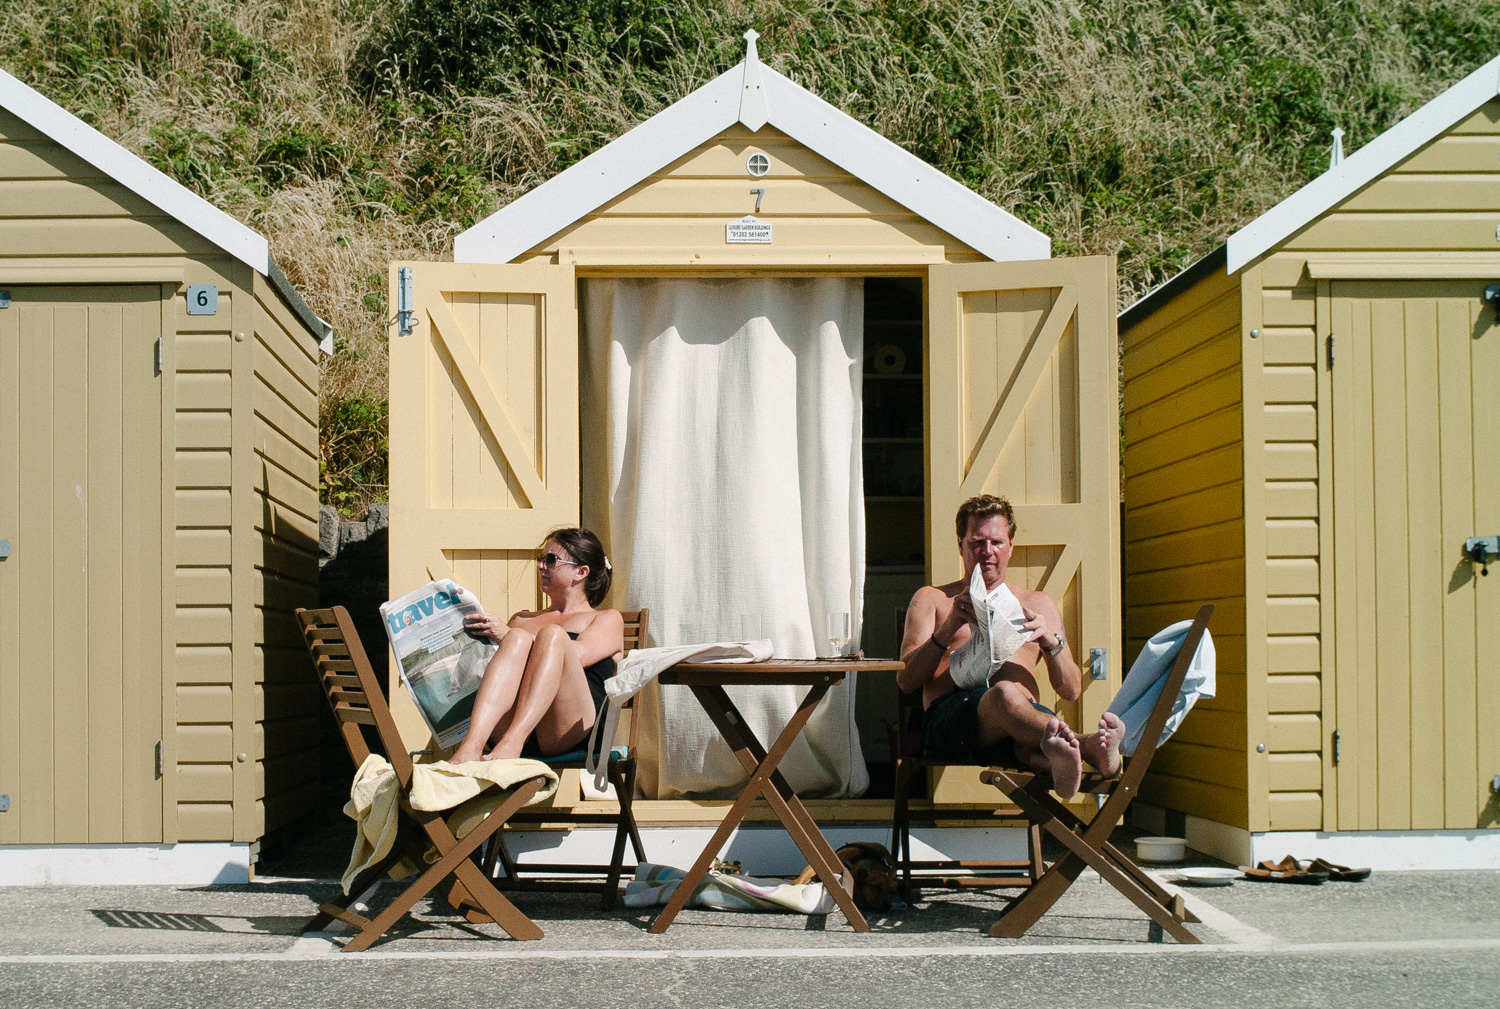 Two people reading newspapers outside a beach hut, by Gary Perlmutter